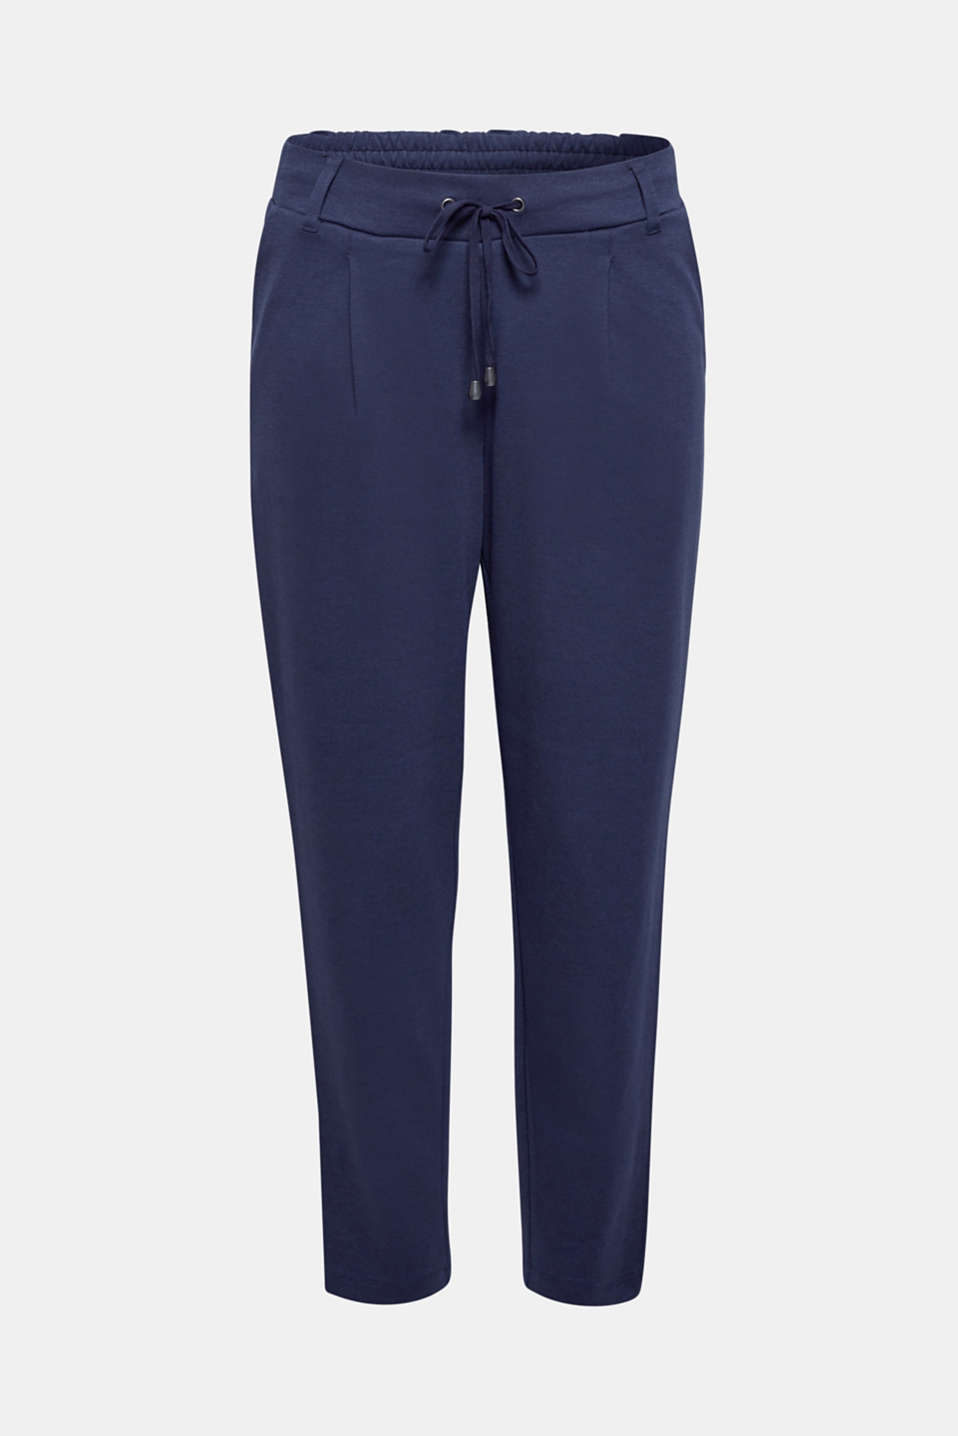 Stretch trousers in a tracksuit bottoms style, NAVY, detail image number 6